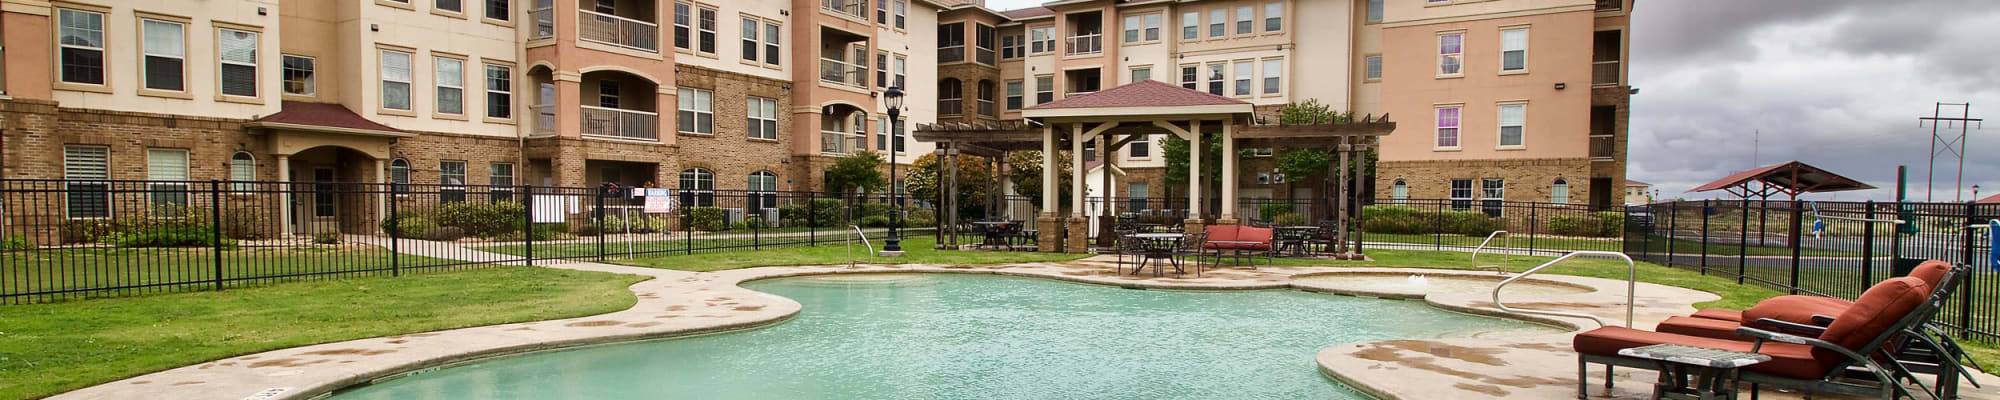 Independent living at Raider Ranch in Lubbock, Texas